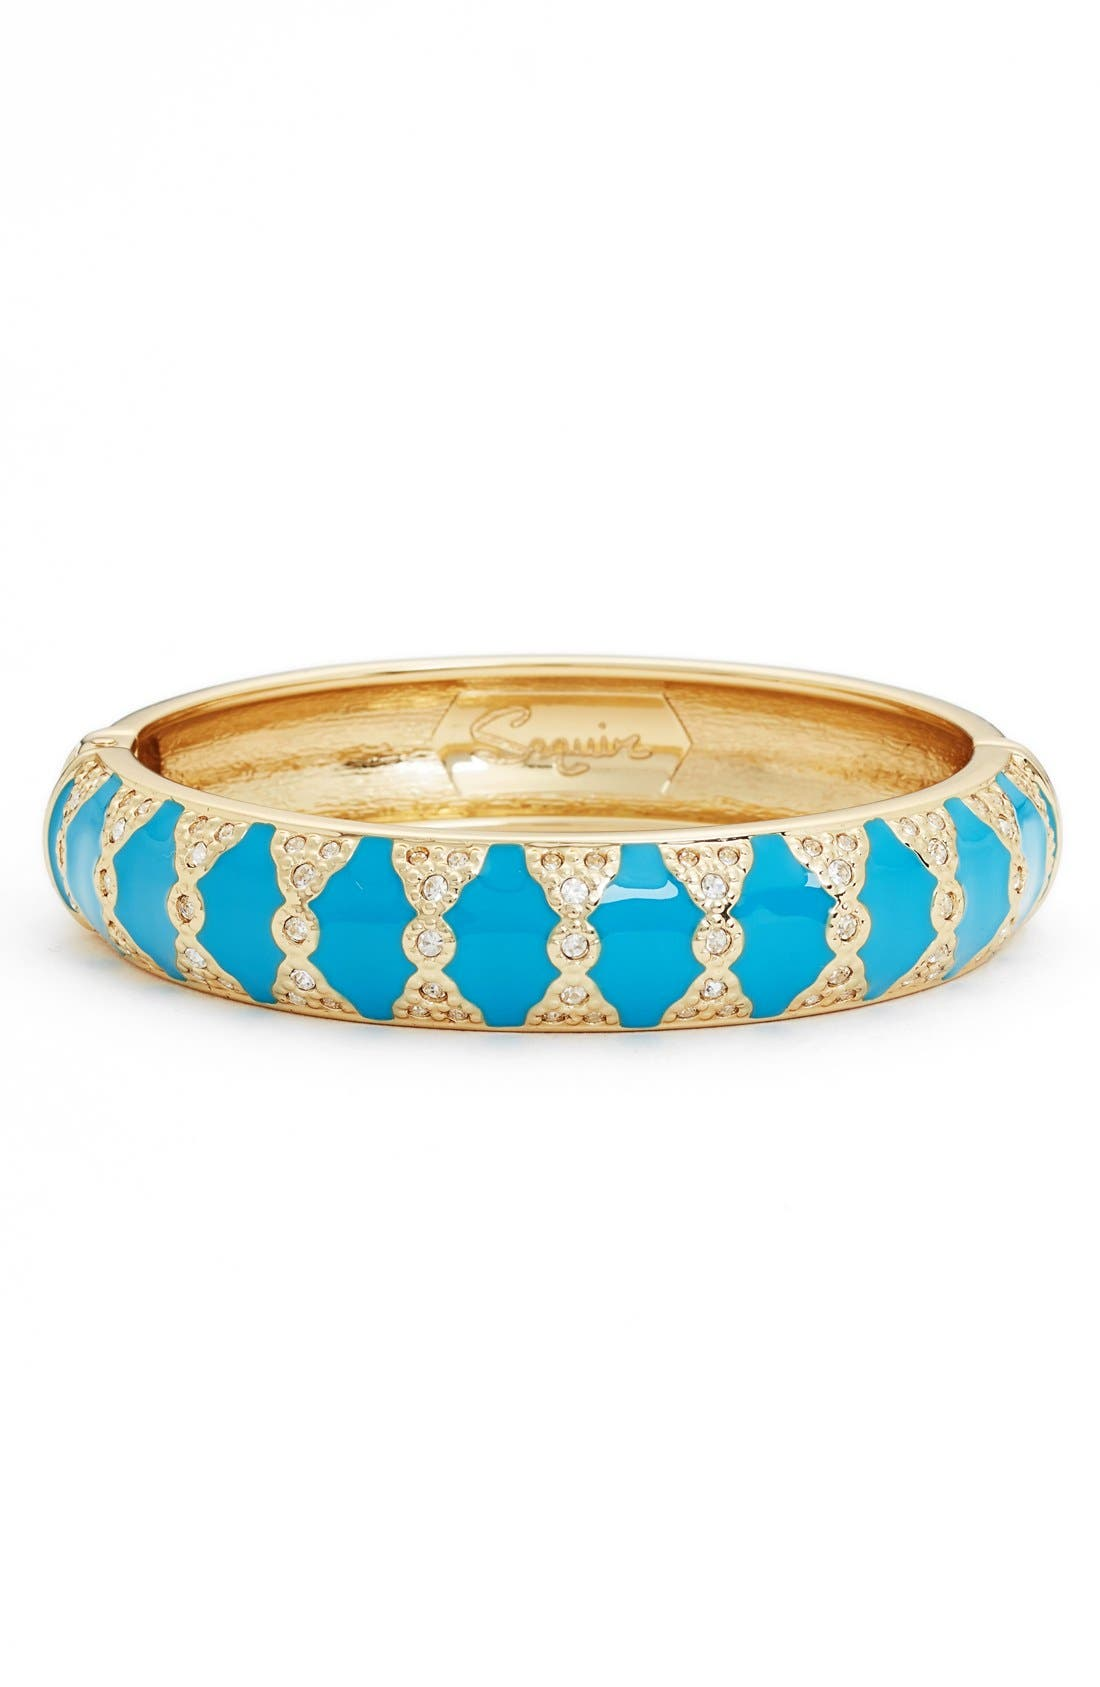 Moorish Embellished Bangle,                             Main thumbnail 1, color,                             BLUE